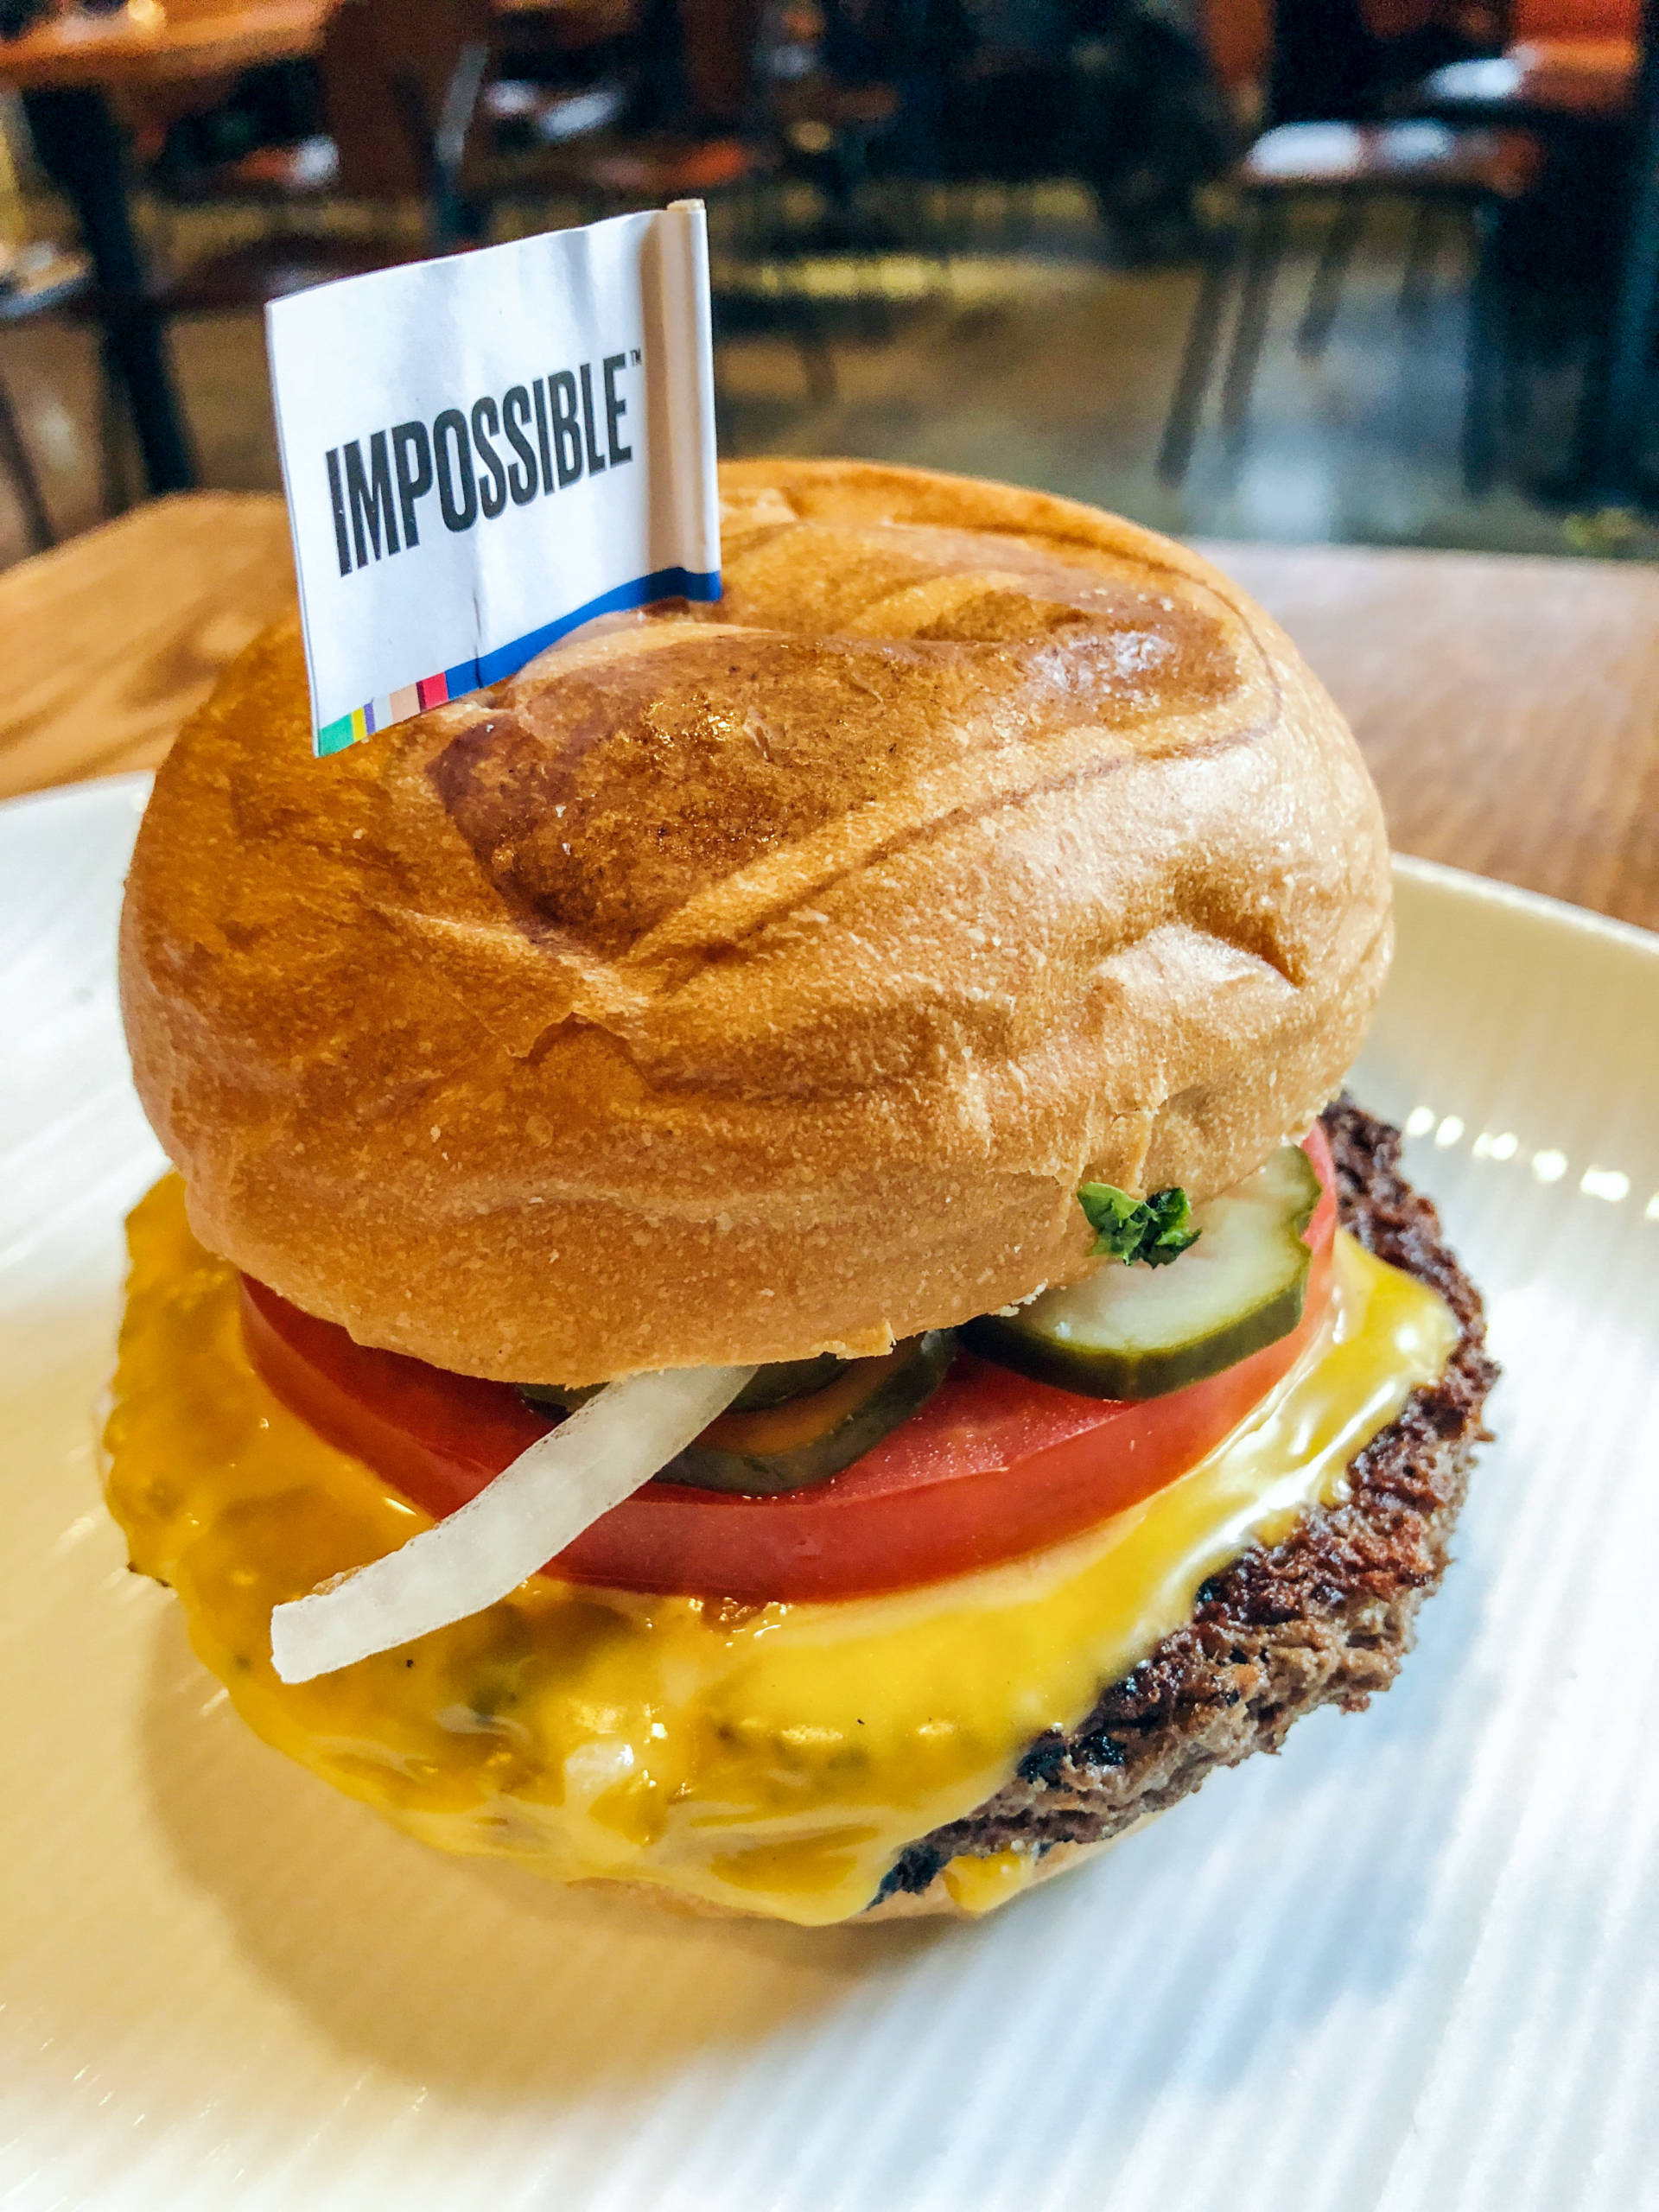 The Impossible Burger can be found at restaurants like Umami Burger